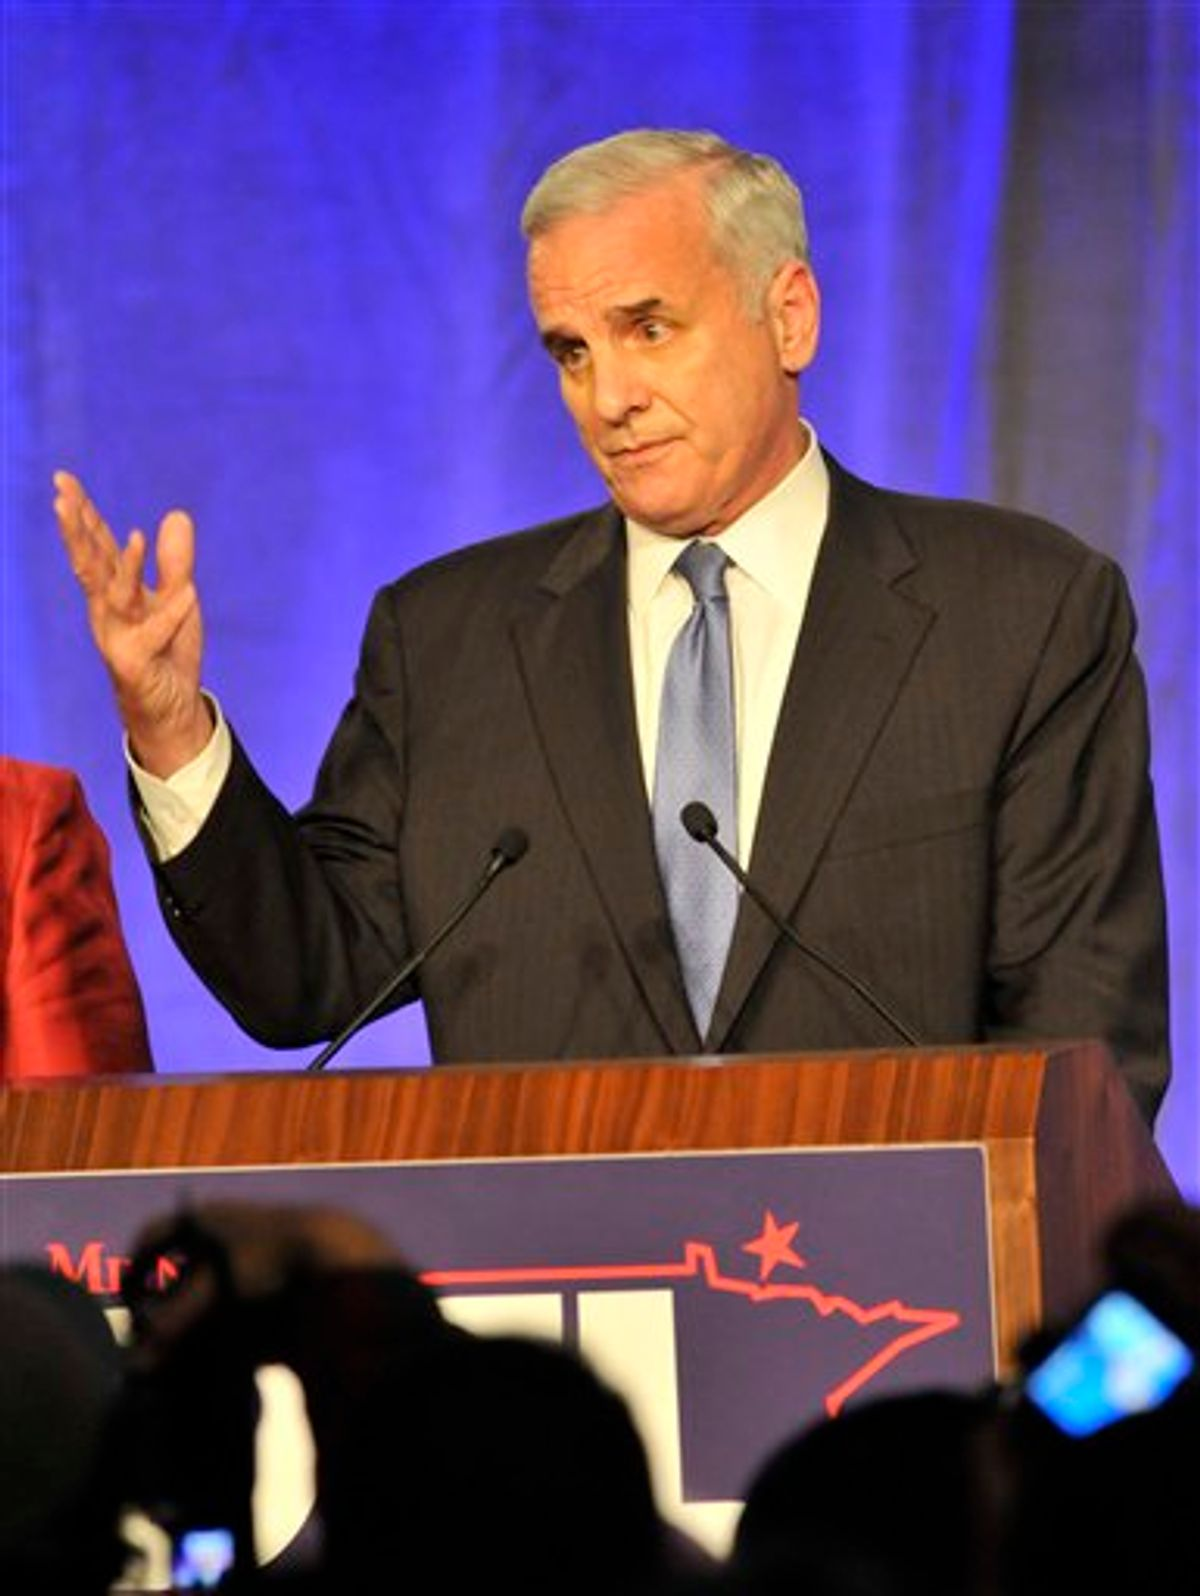 Minnesota Democratic gubernatorial candidate Mark Dayton addresses his supporters as he awaited the outcome of his race at his election night rally early Wednesday, Nov. 3, 2010 in Minneapolis. (AP Photo/Jim Mone) (AP)